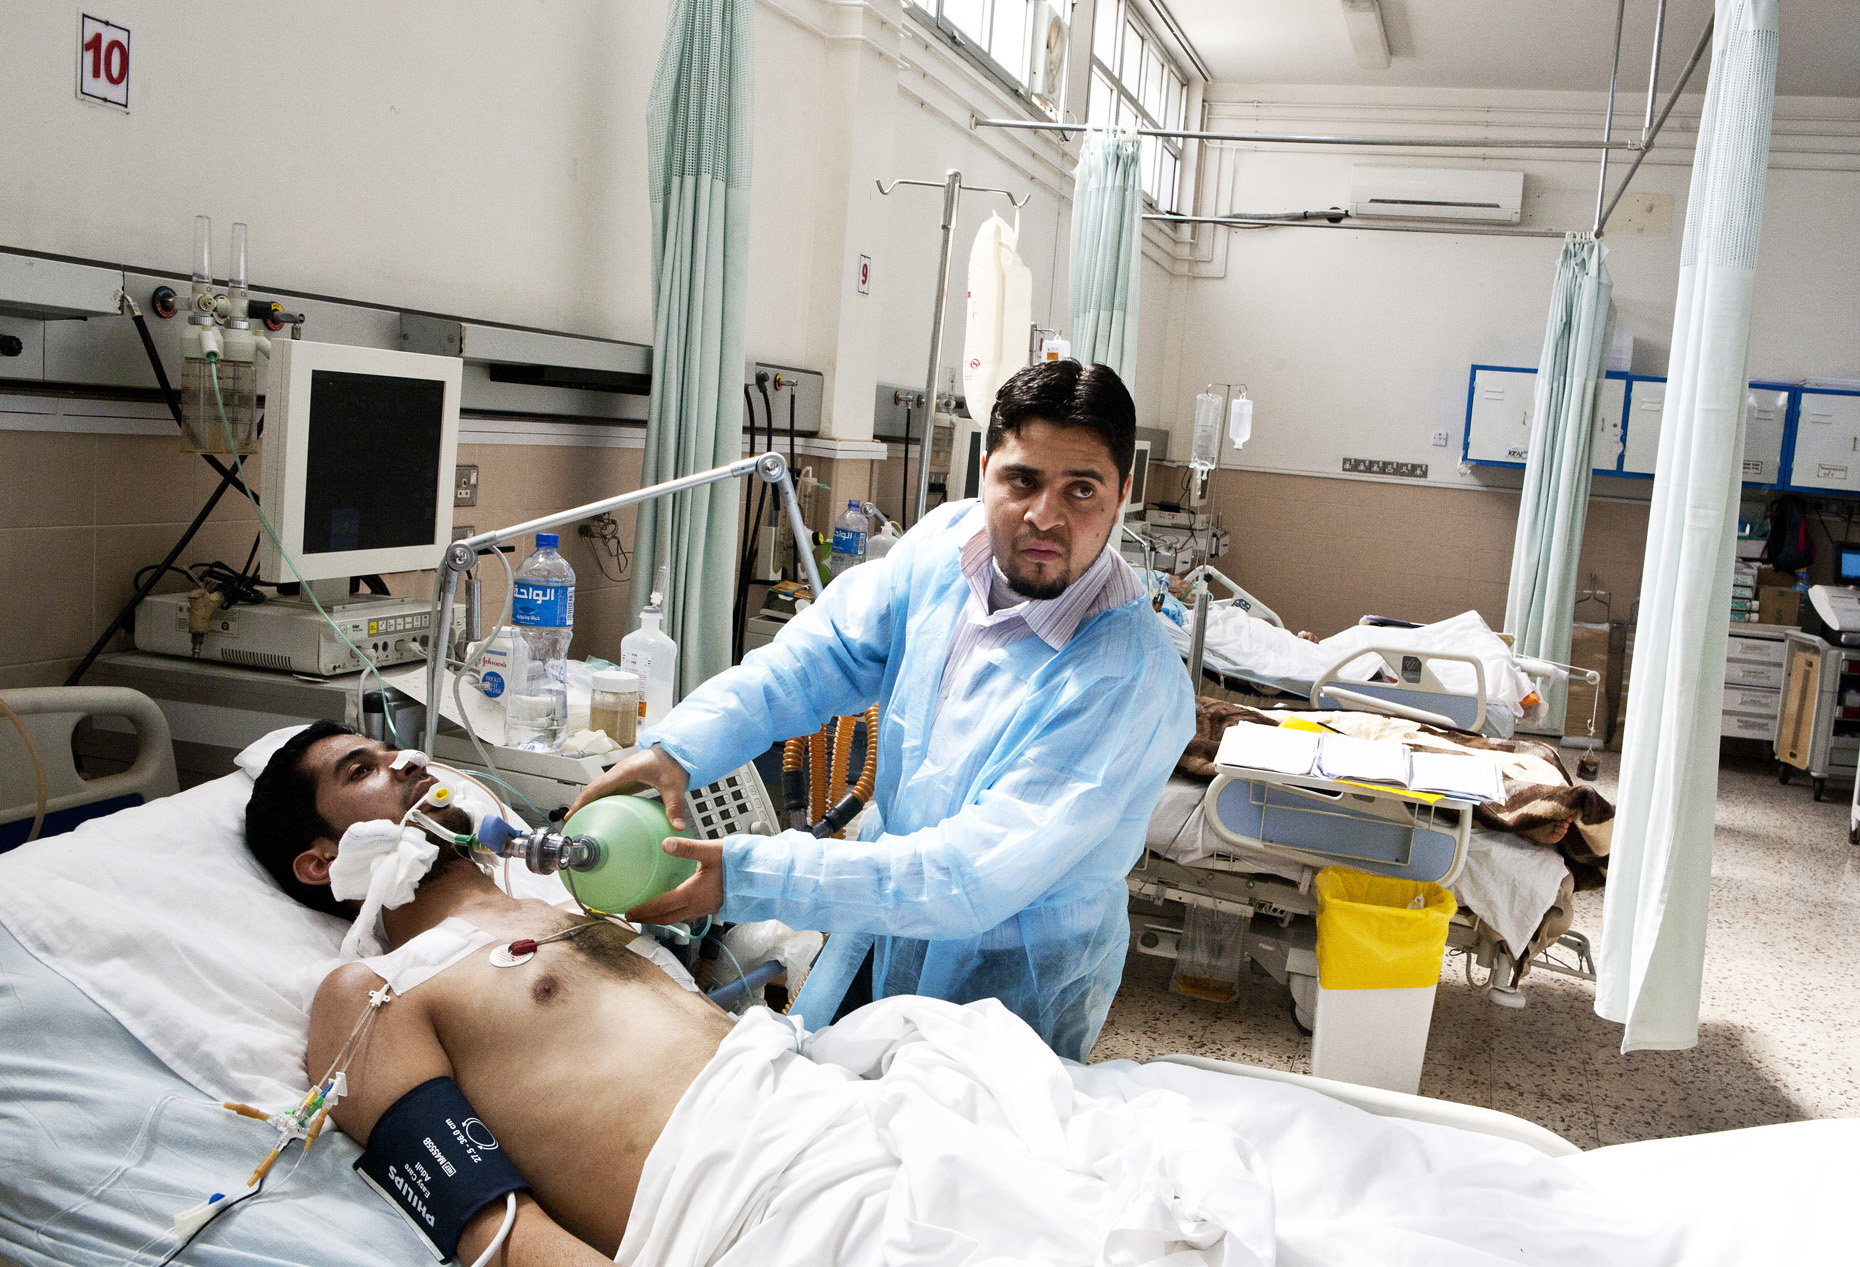 Hospital Patients Pictures : Aljalaa Hospital, Benghazi. A patient in the trauma section receives ...